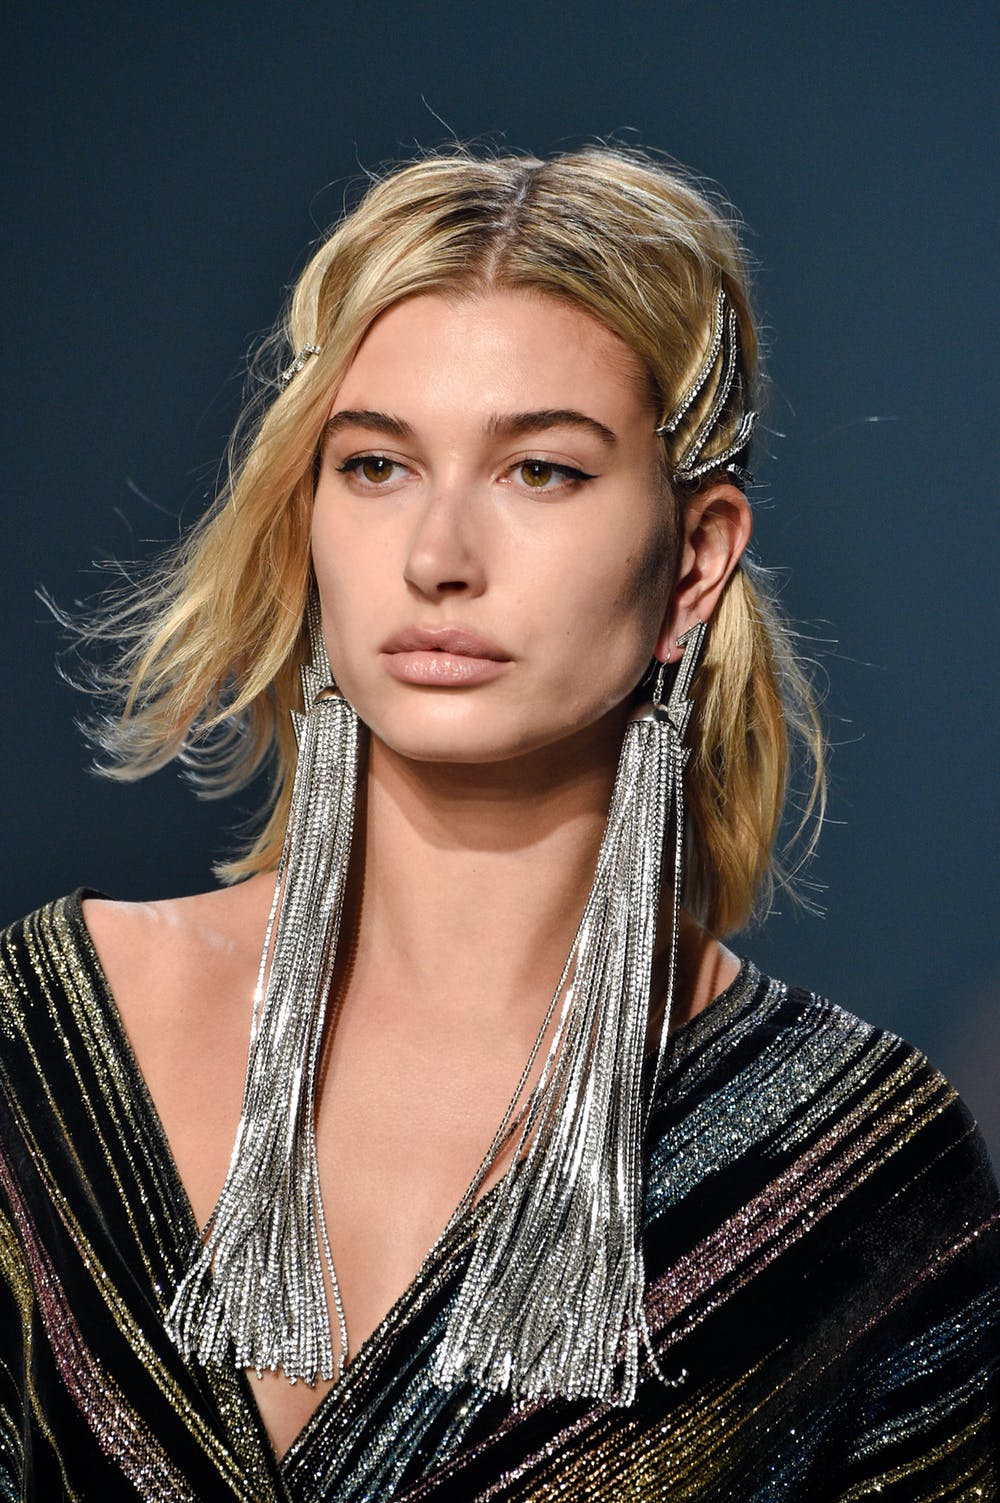 one-side-how-to-style-hair-accessories-clip-barrettes-earrings-silver-long-sparkle.jpg